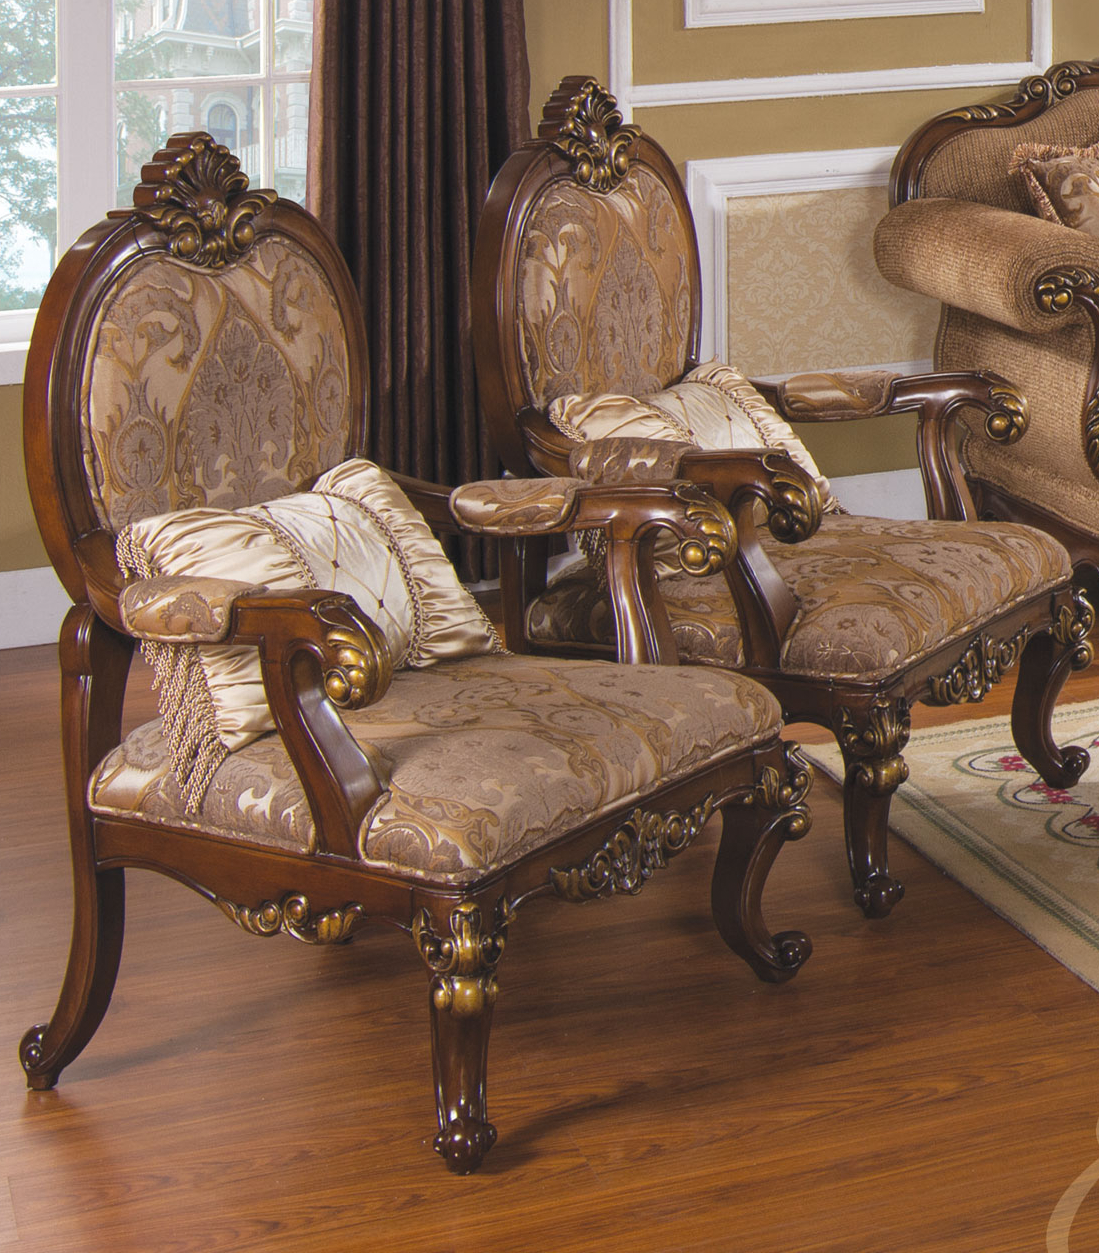 Tuscan villa traditional formal sofa set Antique loveseat styles